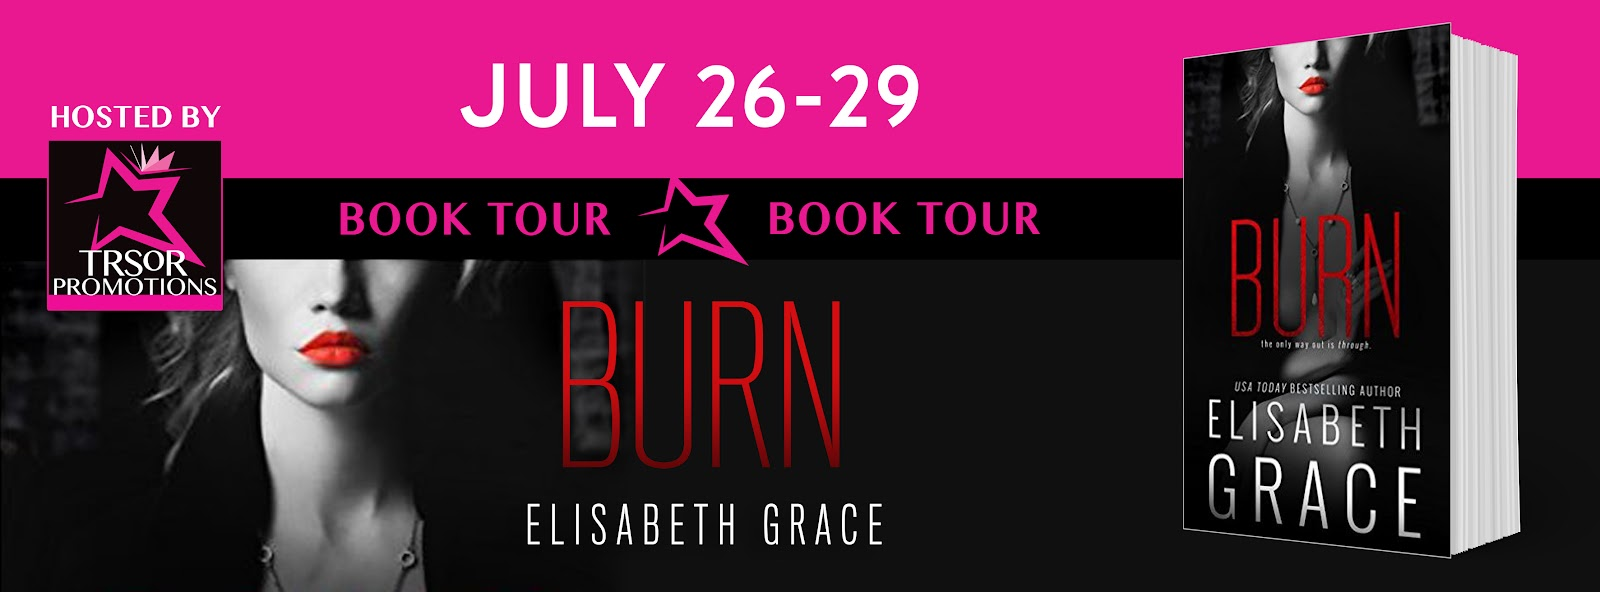 BURN_BOOK_TOUR.jpg